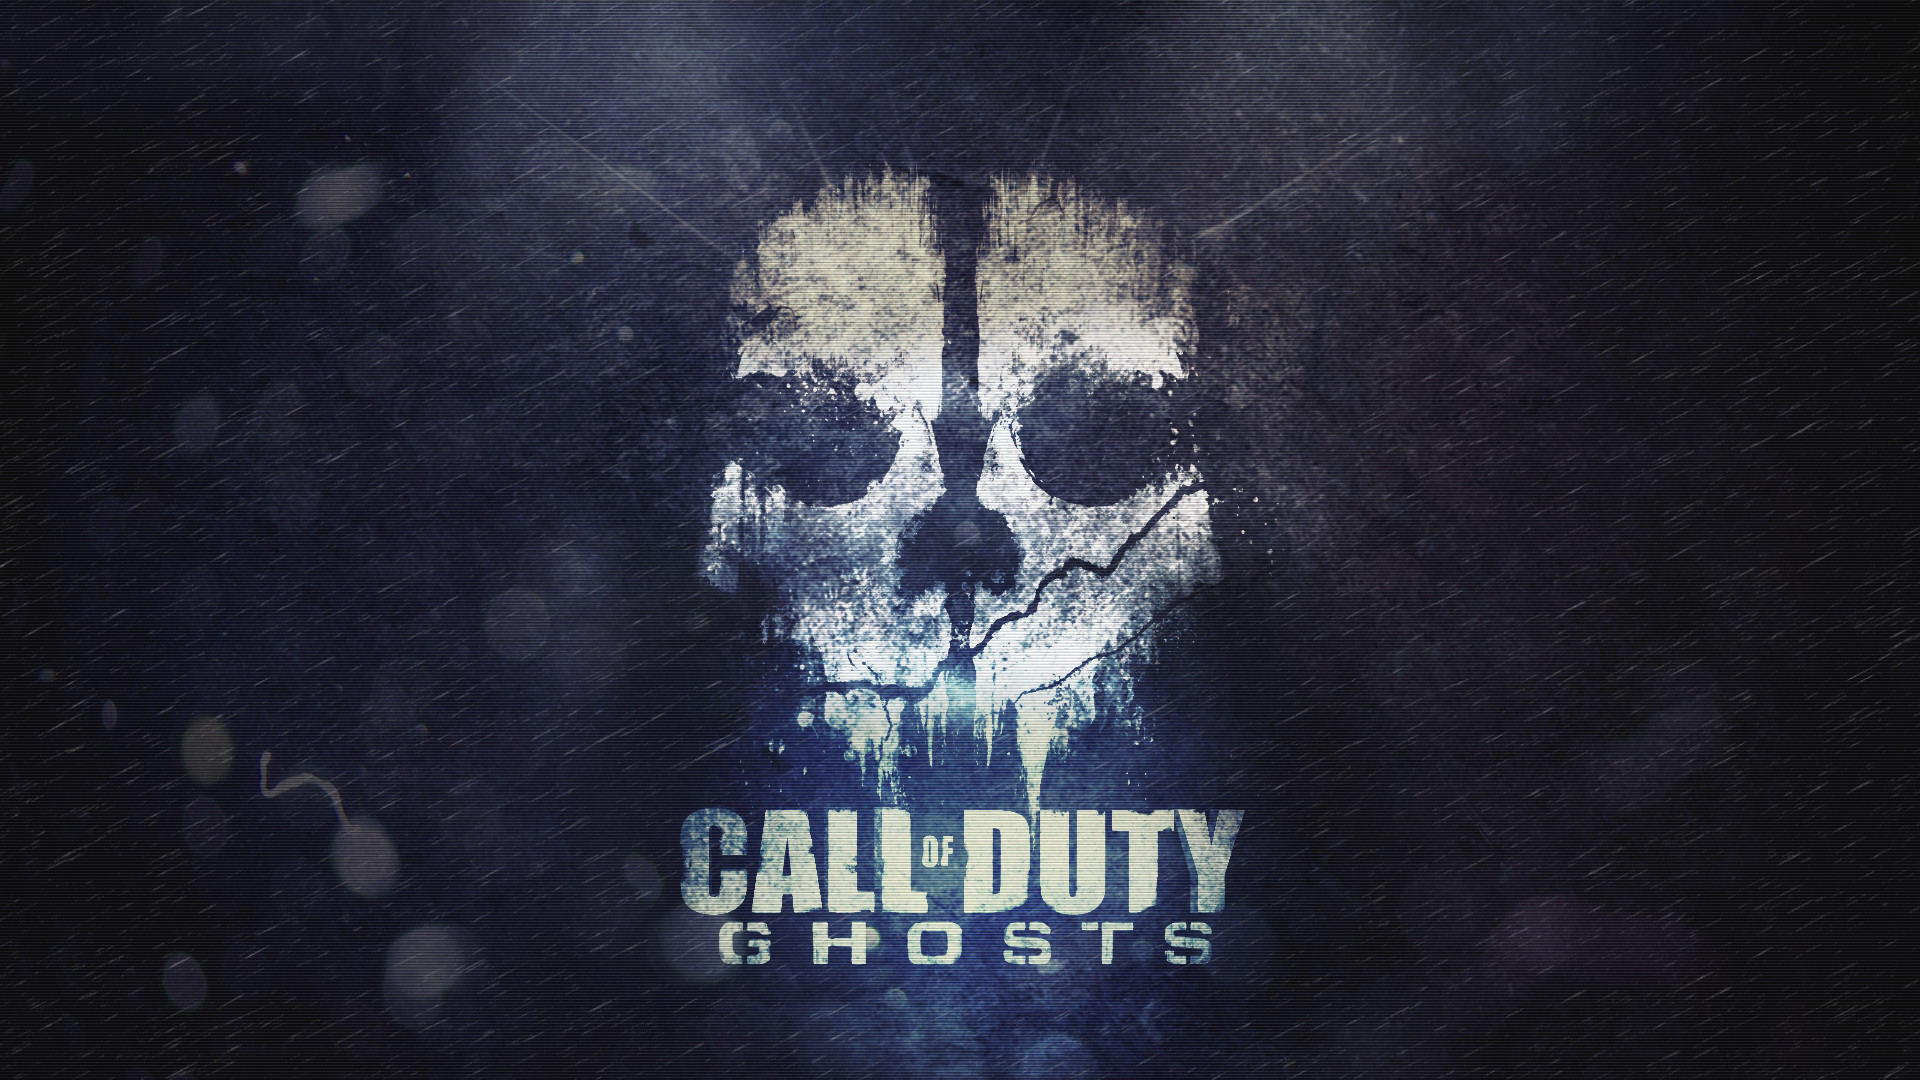 1920x1080 Computerspiele Call Of Duty Ghosts Skelett Call Of Duty Wallpaper